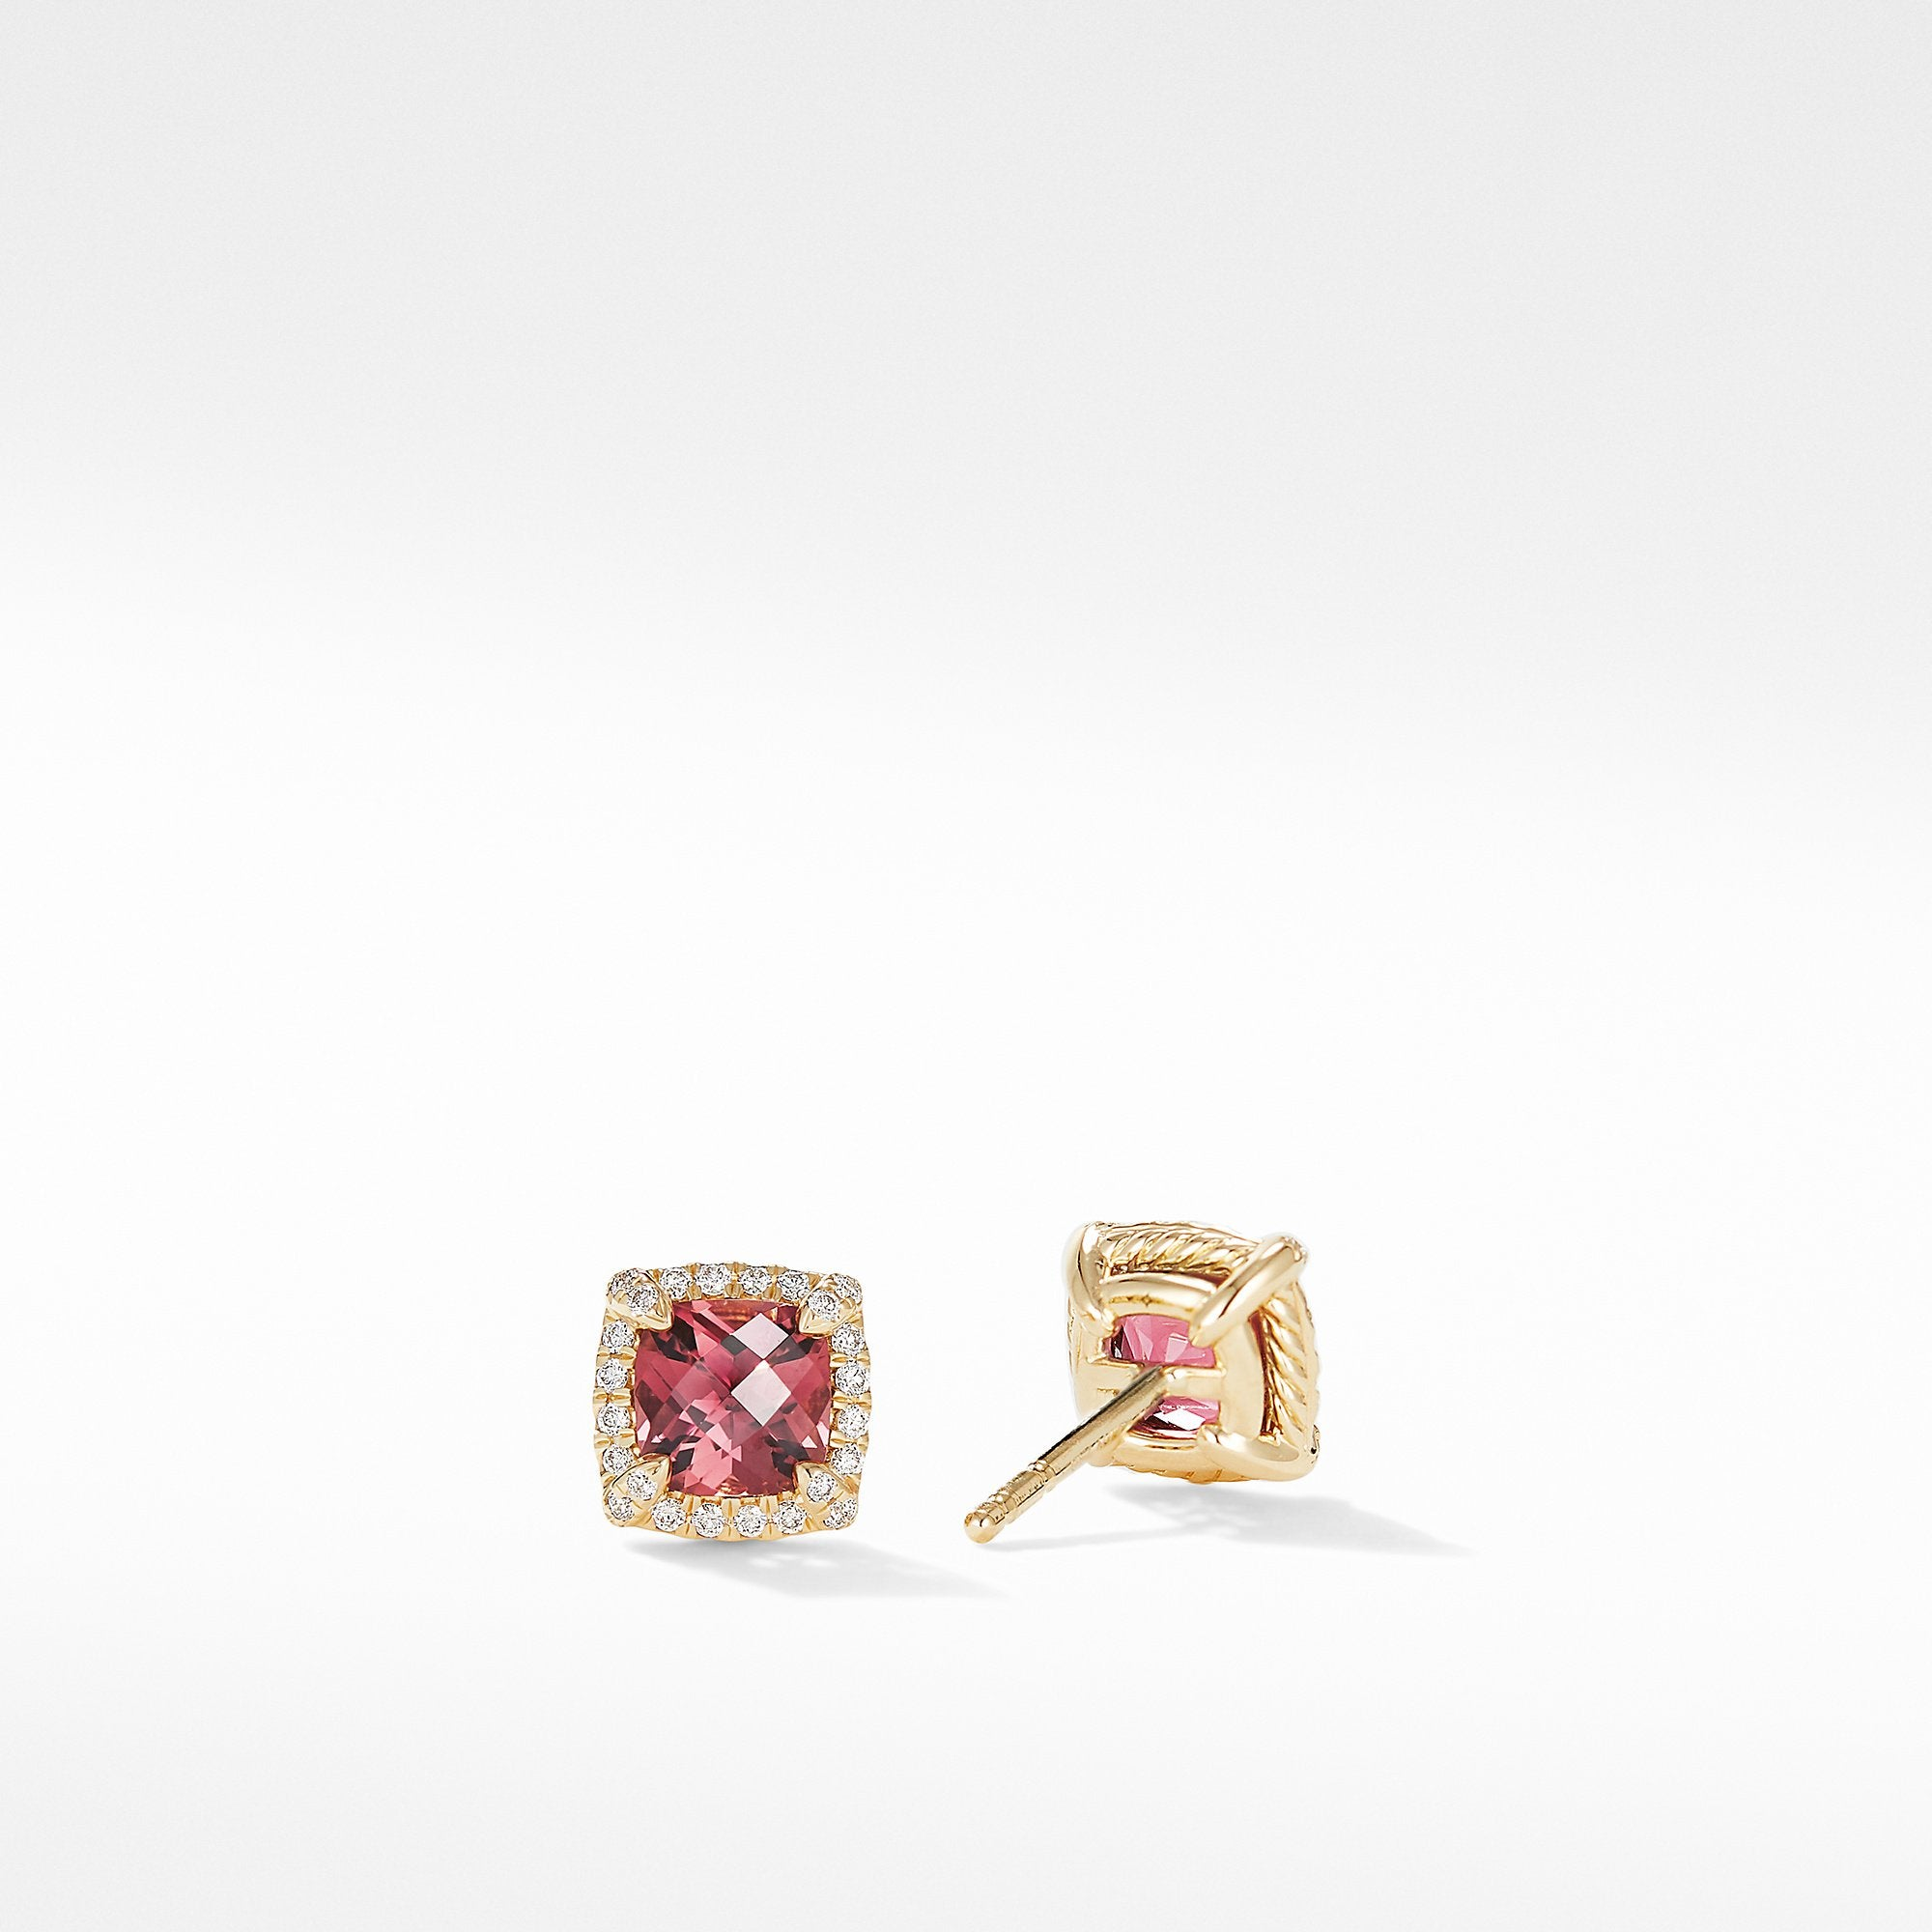 Petite Chatelaine® Pavé Bezel Stud Earrings in 18K Yellow Gold with Pink Tourmaline